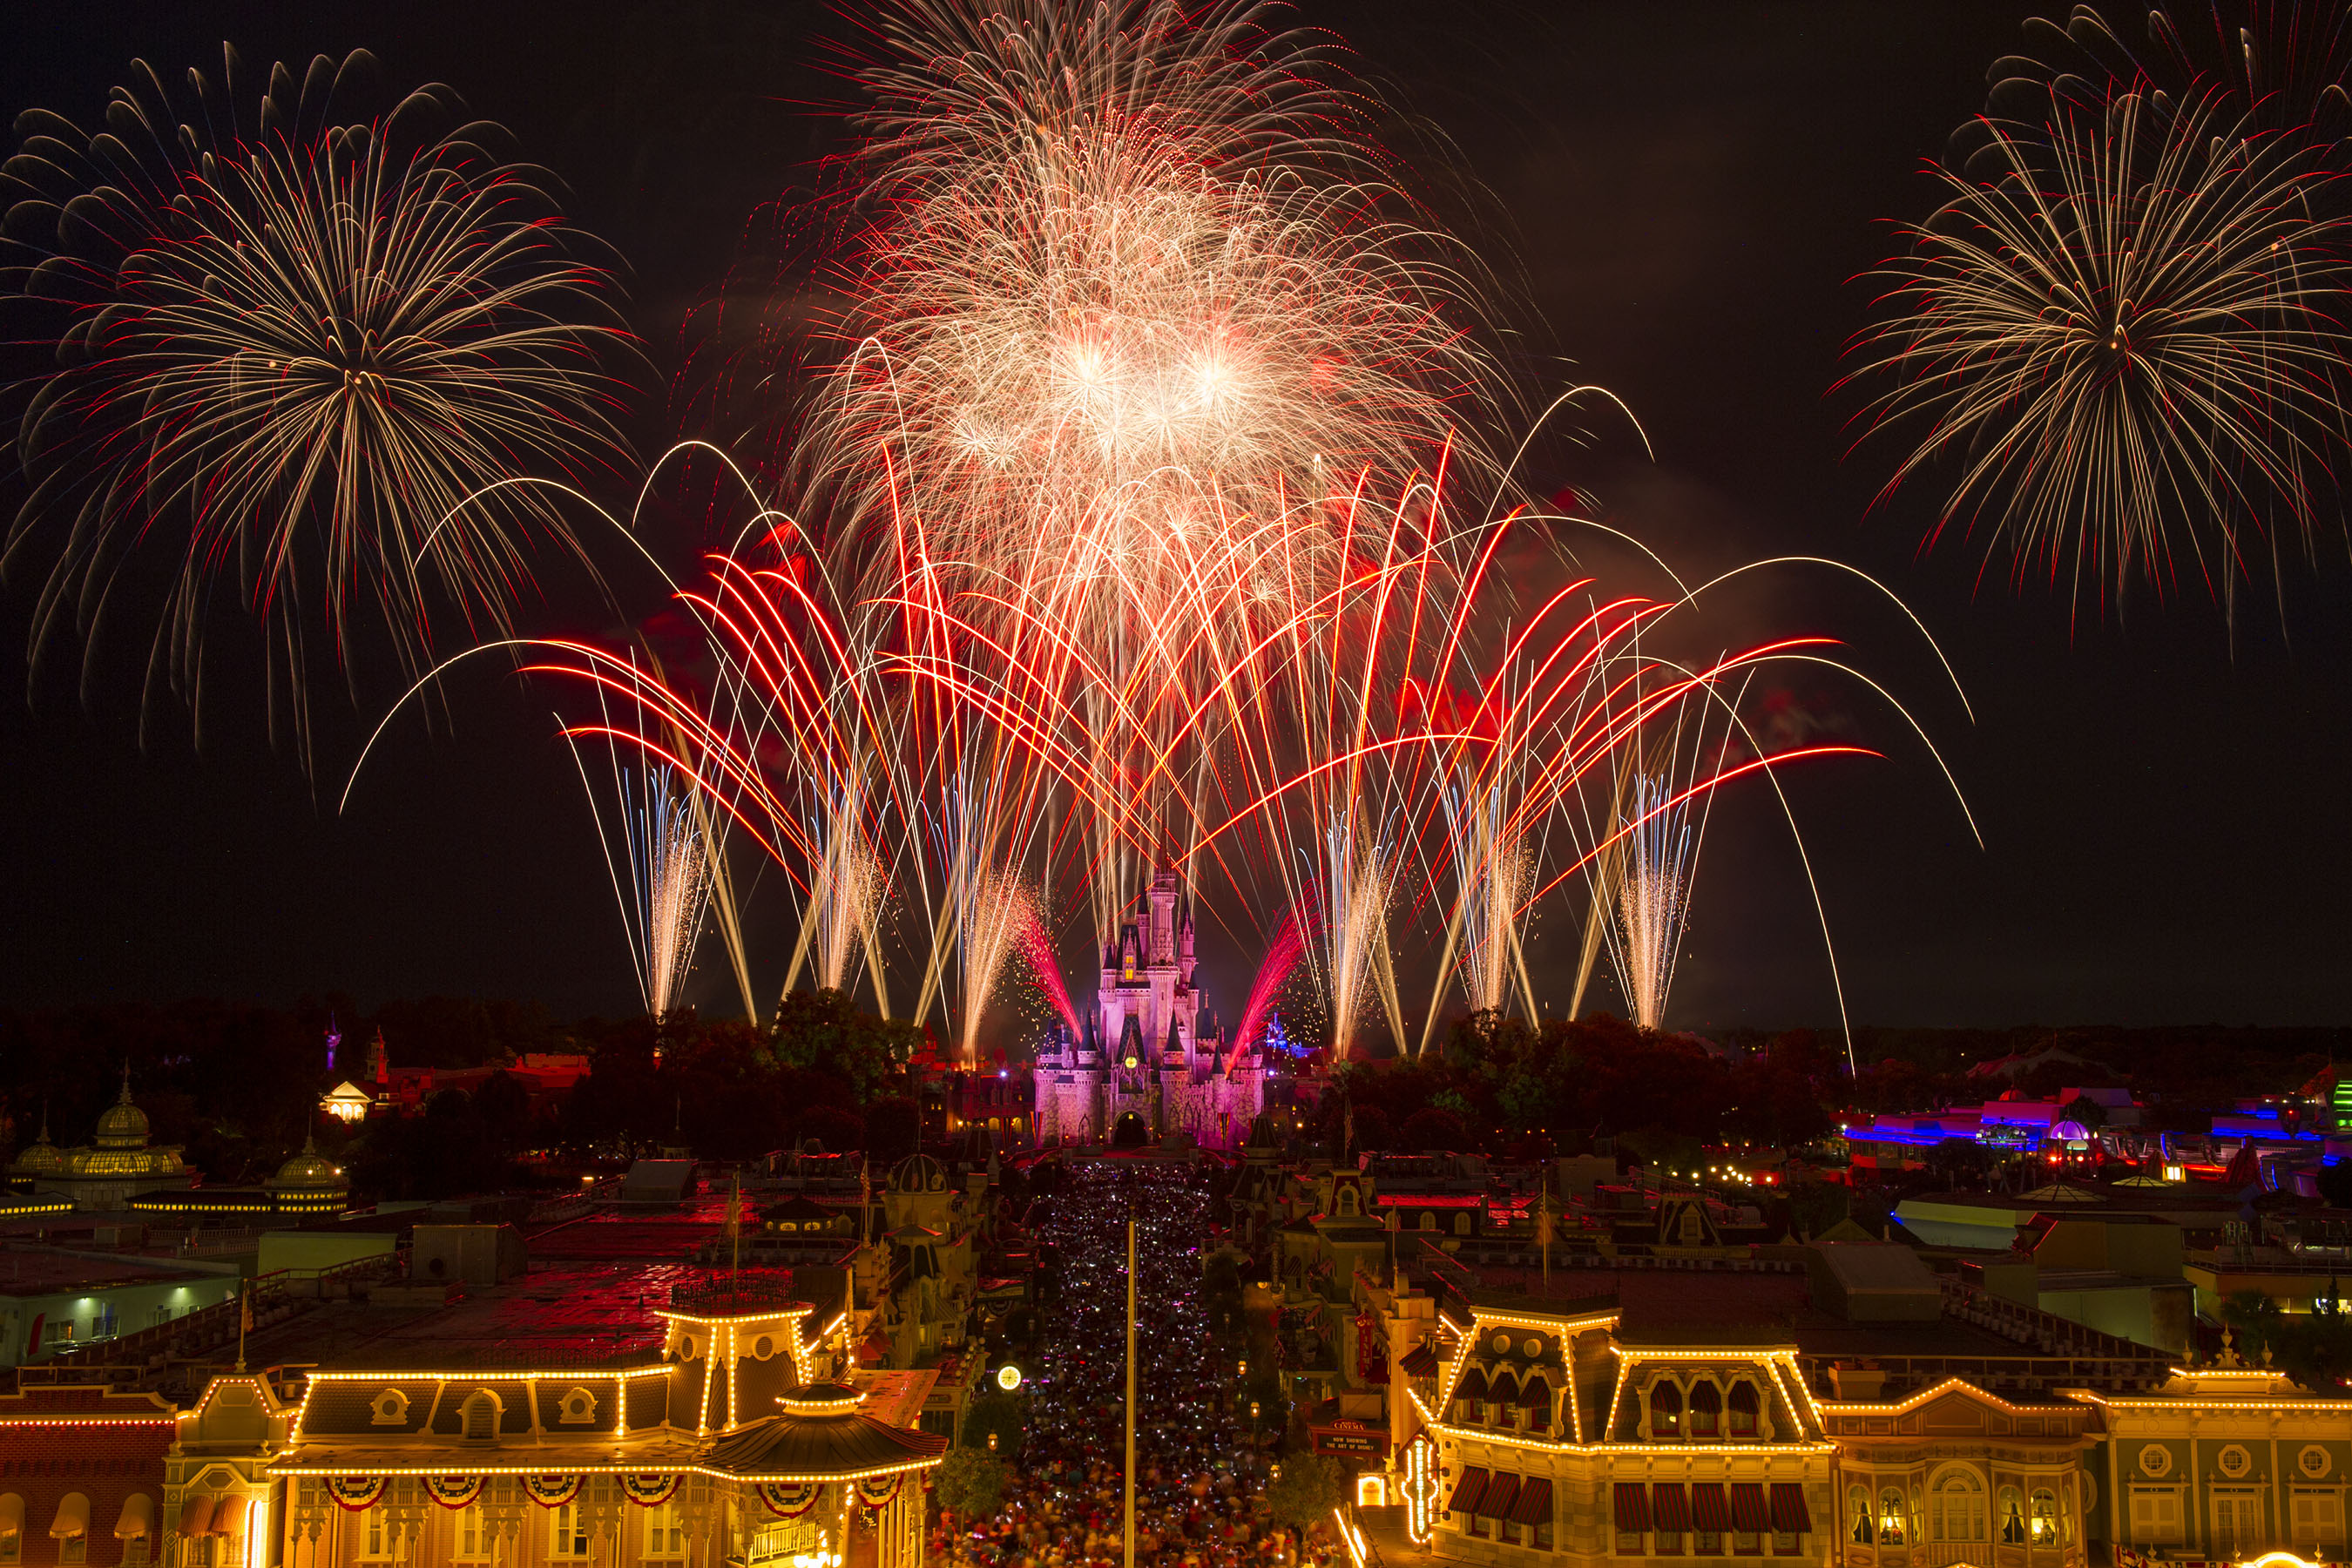 Disney Park Strengths and Weaknesses: The Magic Kingdom